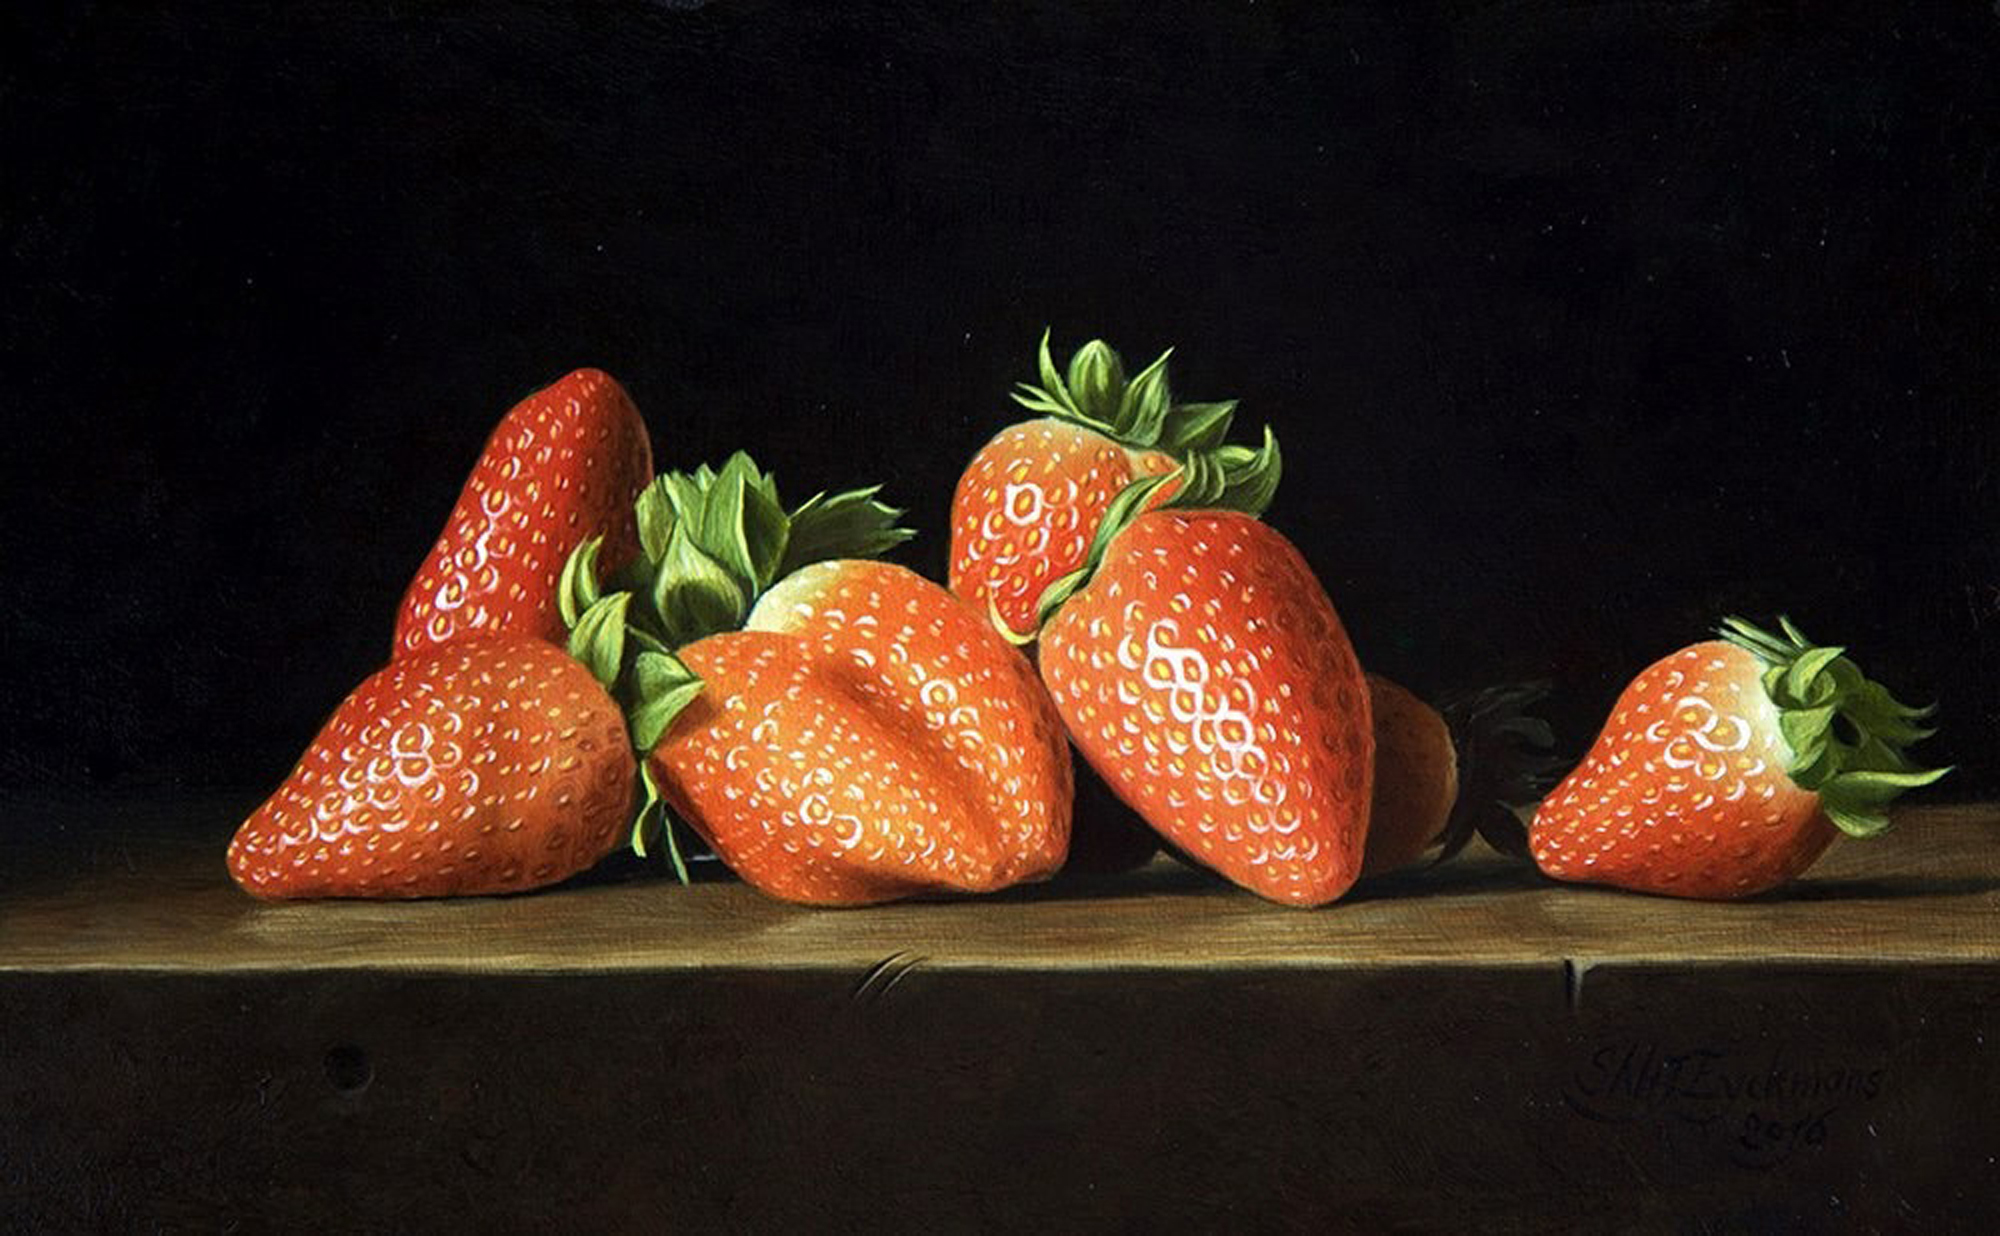 strawberries copy.jpg